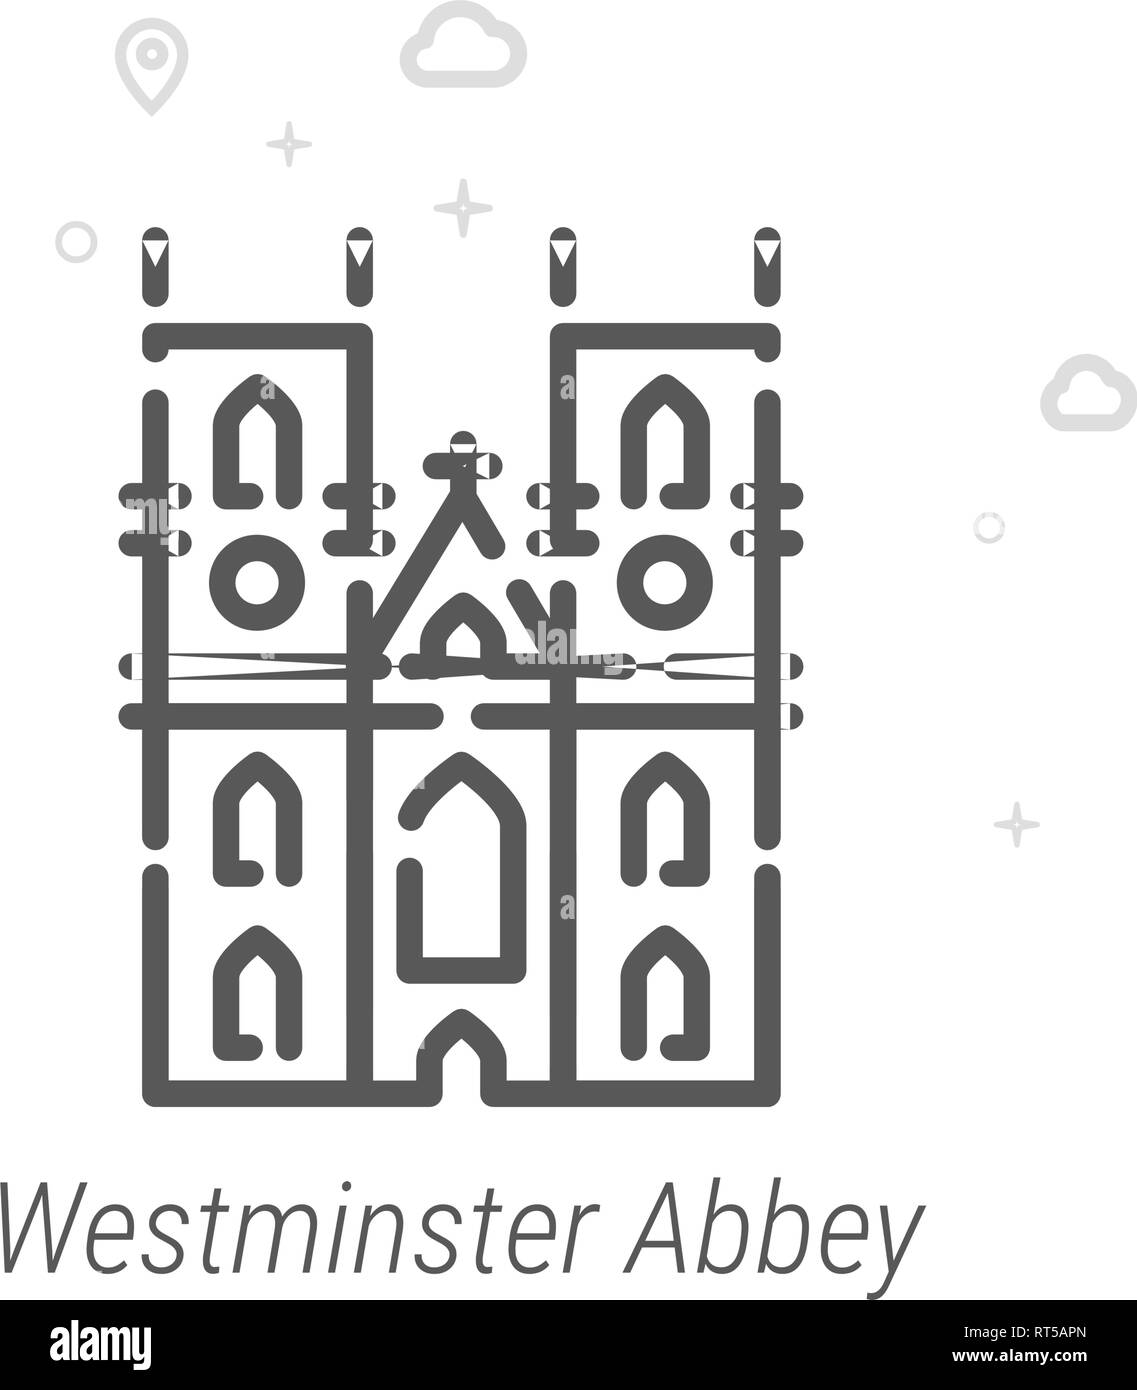 Westminster Abbey, London Vector Line Icon. Historical Landmarks Symbol, Pictogram, Sign. Light Abstract Geometric Background. Editable Stroke. Adjust - Stock Image